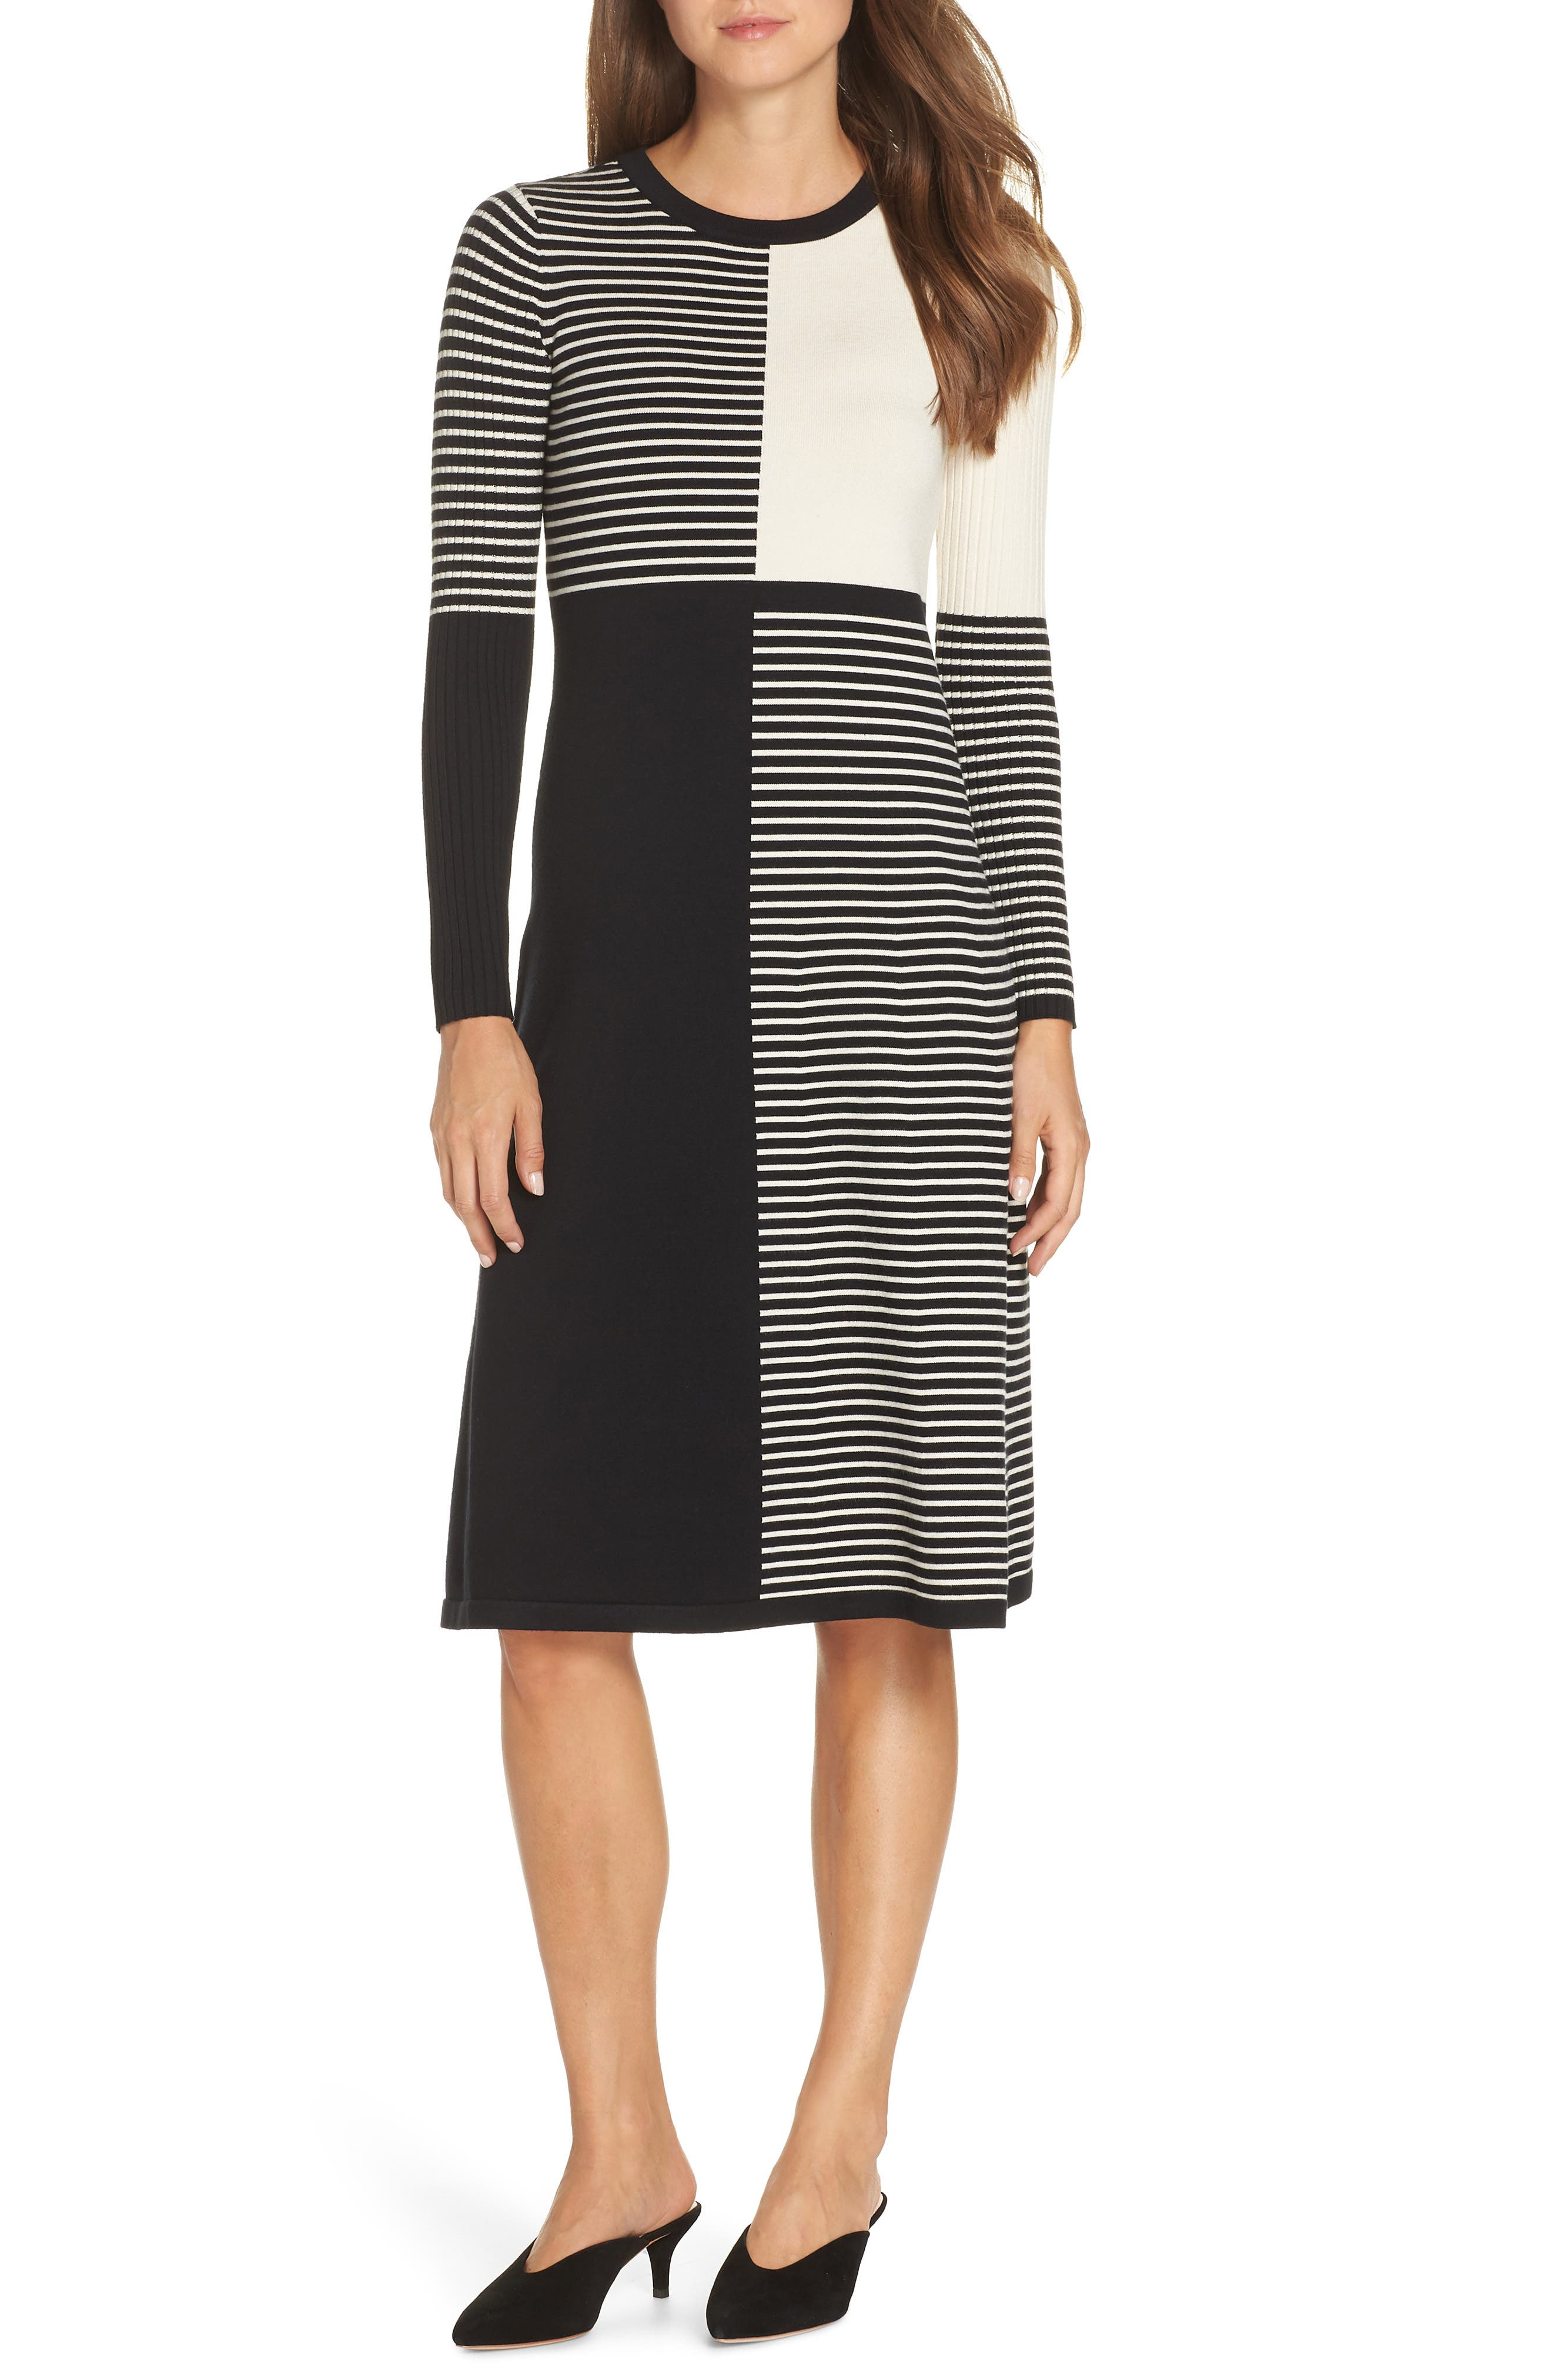 ELIZA J, Placed Stripe Sweater Dress, Main thumbnail 1, color, 900